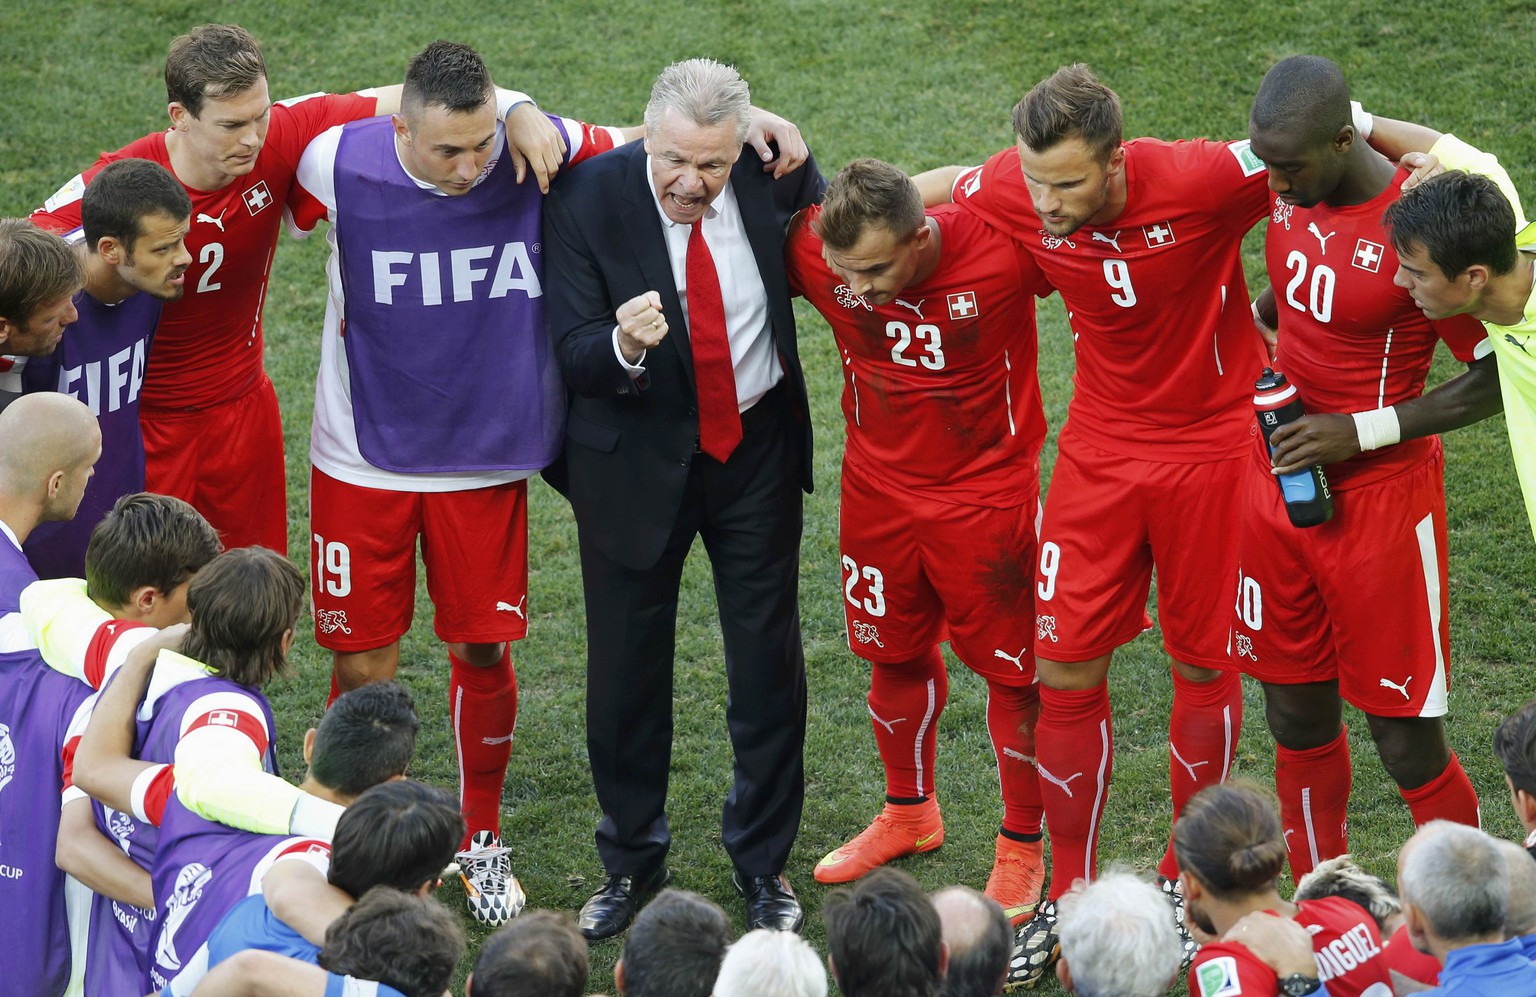 Switzerland's national soccer players huddle together for a team-talk with team coach Ottmar Hitzfeld before their extra time in their 2014 World Cup round of 16 game against Argentina at the Corinthians arena in Sao Paulo July 1, 2014.  REUTERS/Paulo Whitaker (BRAZIL  - Tags: SOCCER SPORT WORLD CUP)